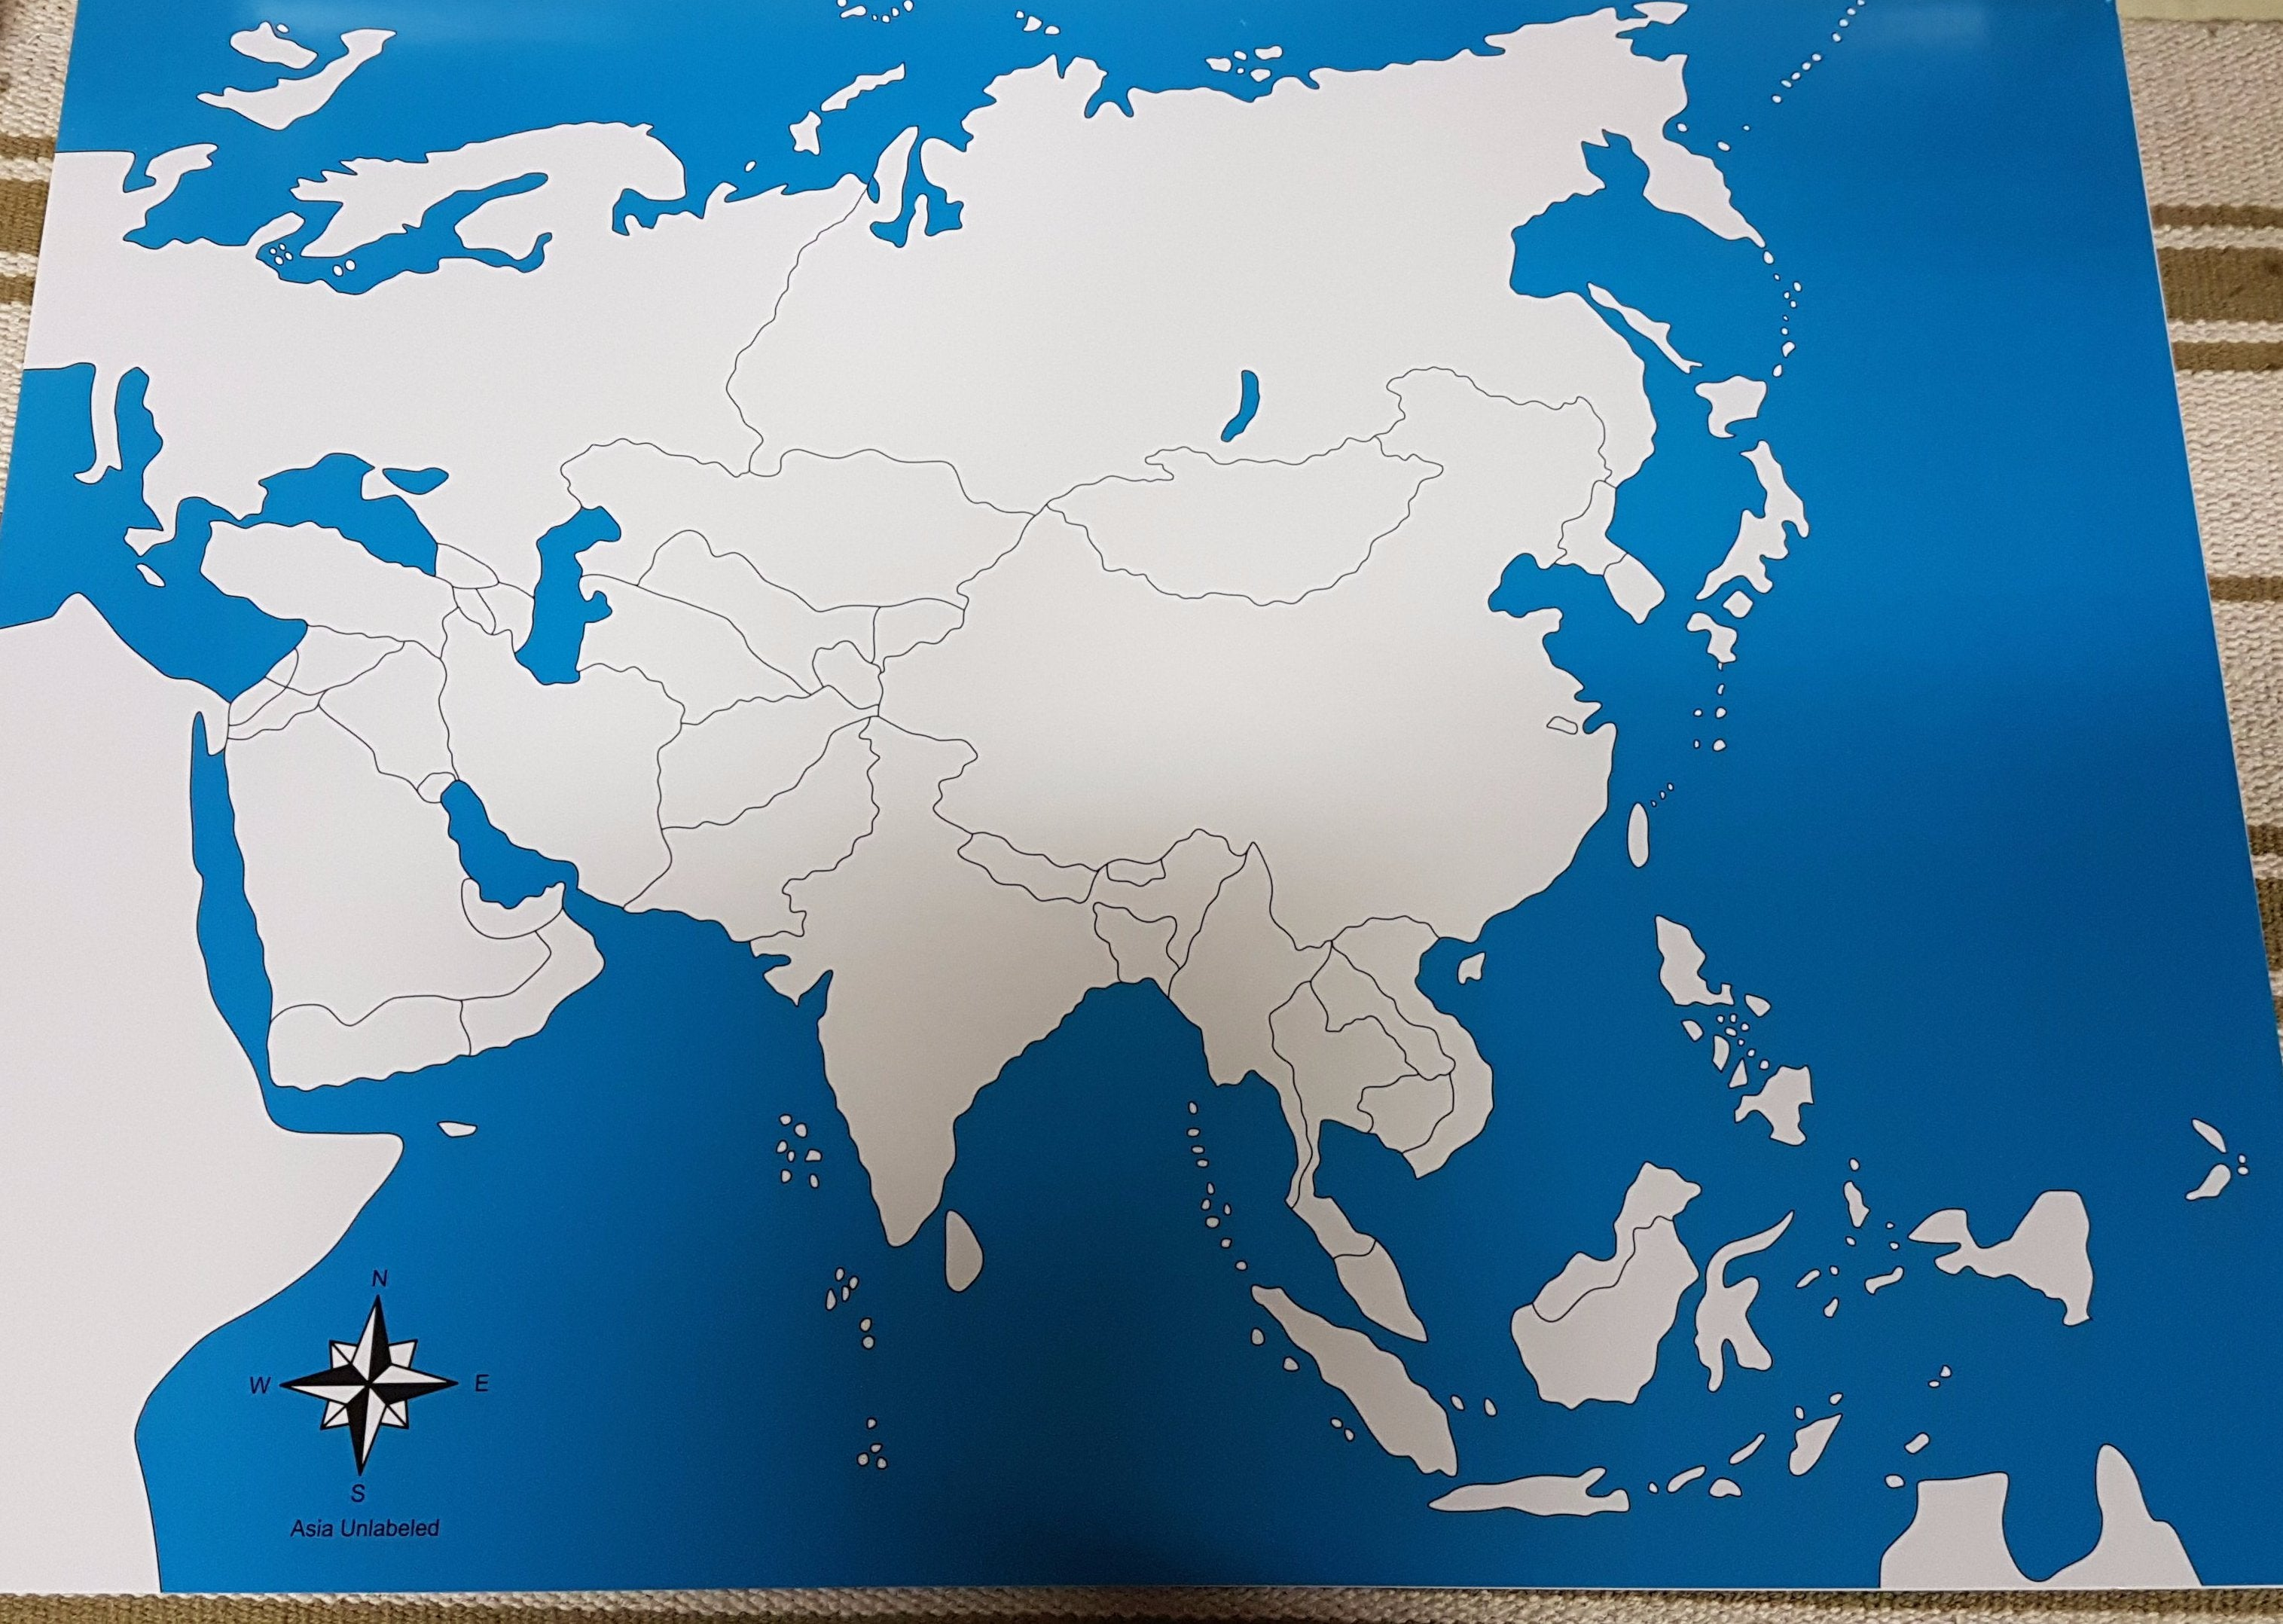 Cultural righttolearn labelled and unlabeled asia map gumiabroncs Choice Image